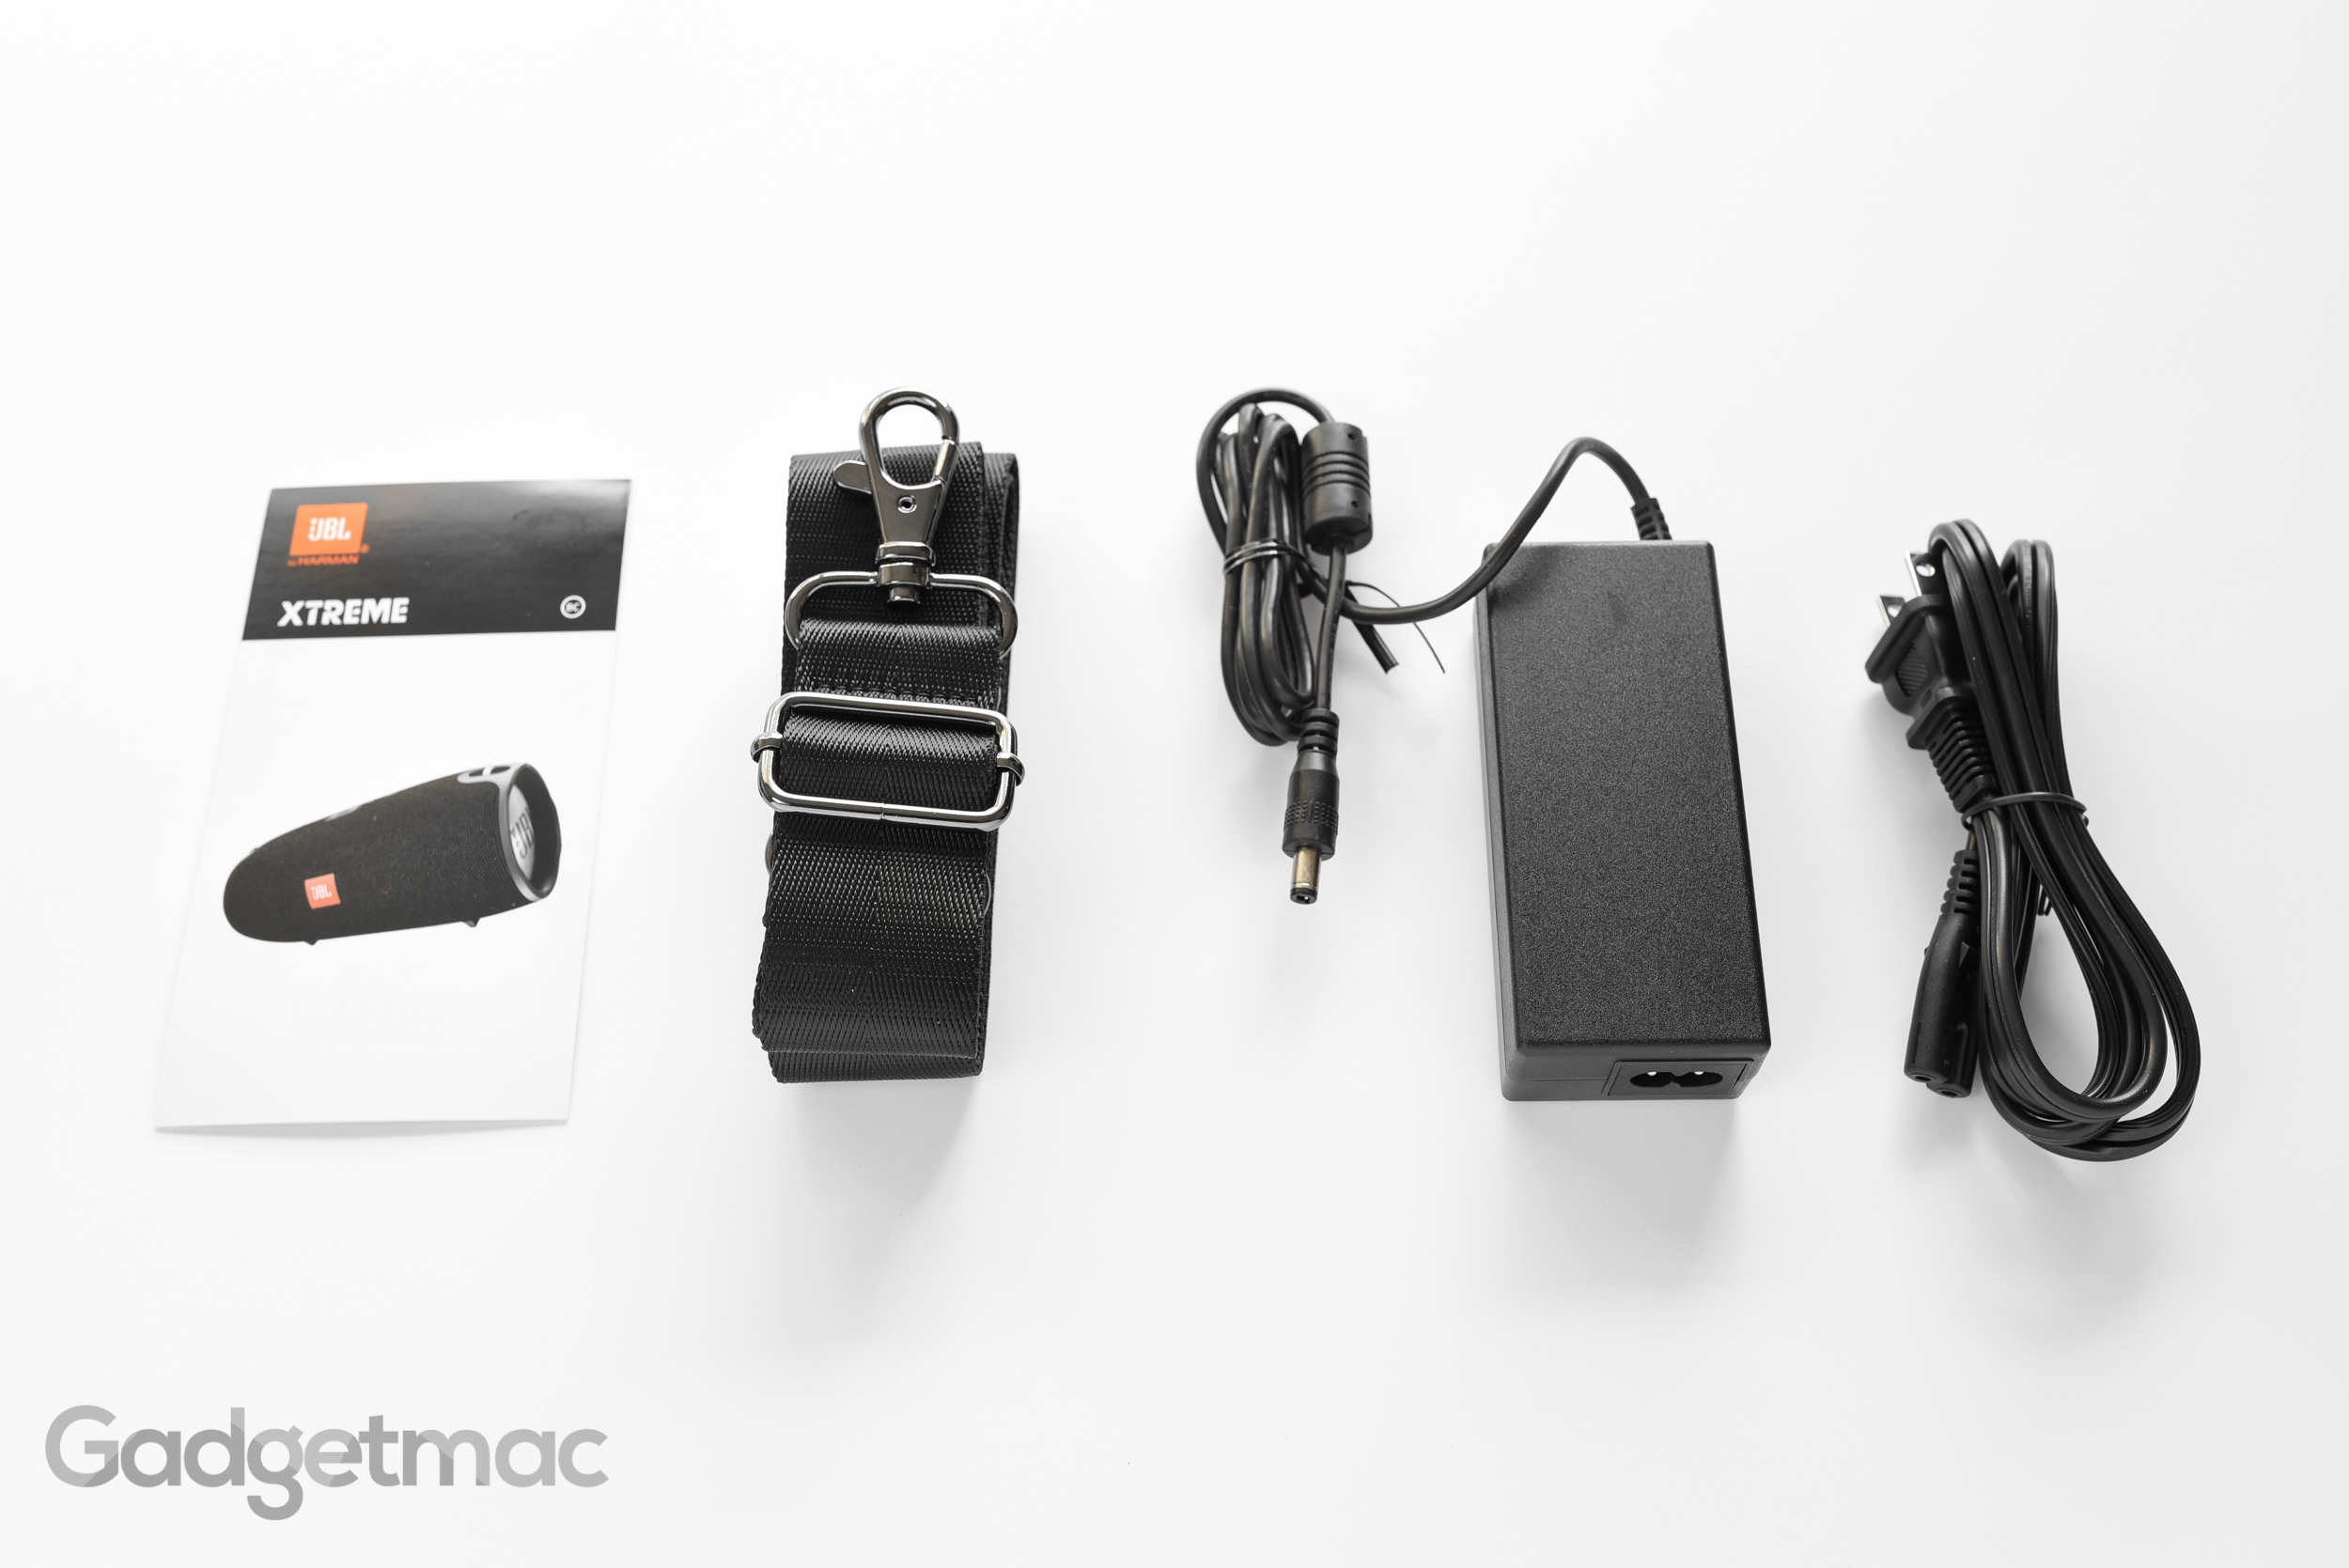 jbl-xtreme-included-accessories.jpg